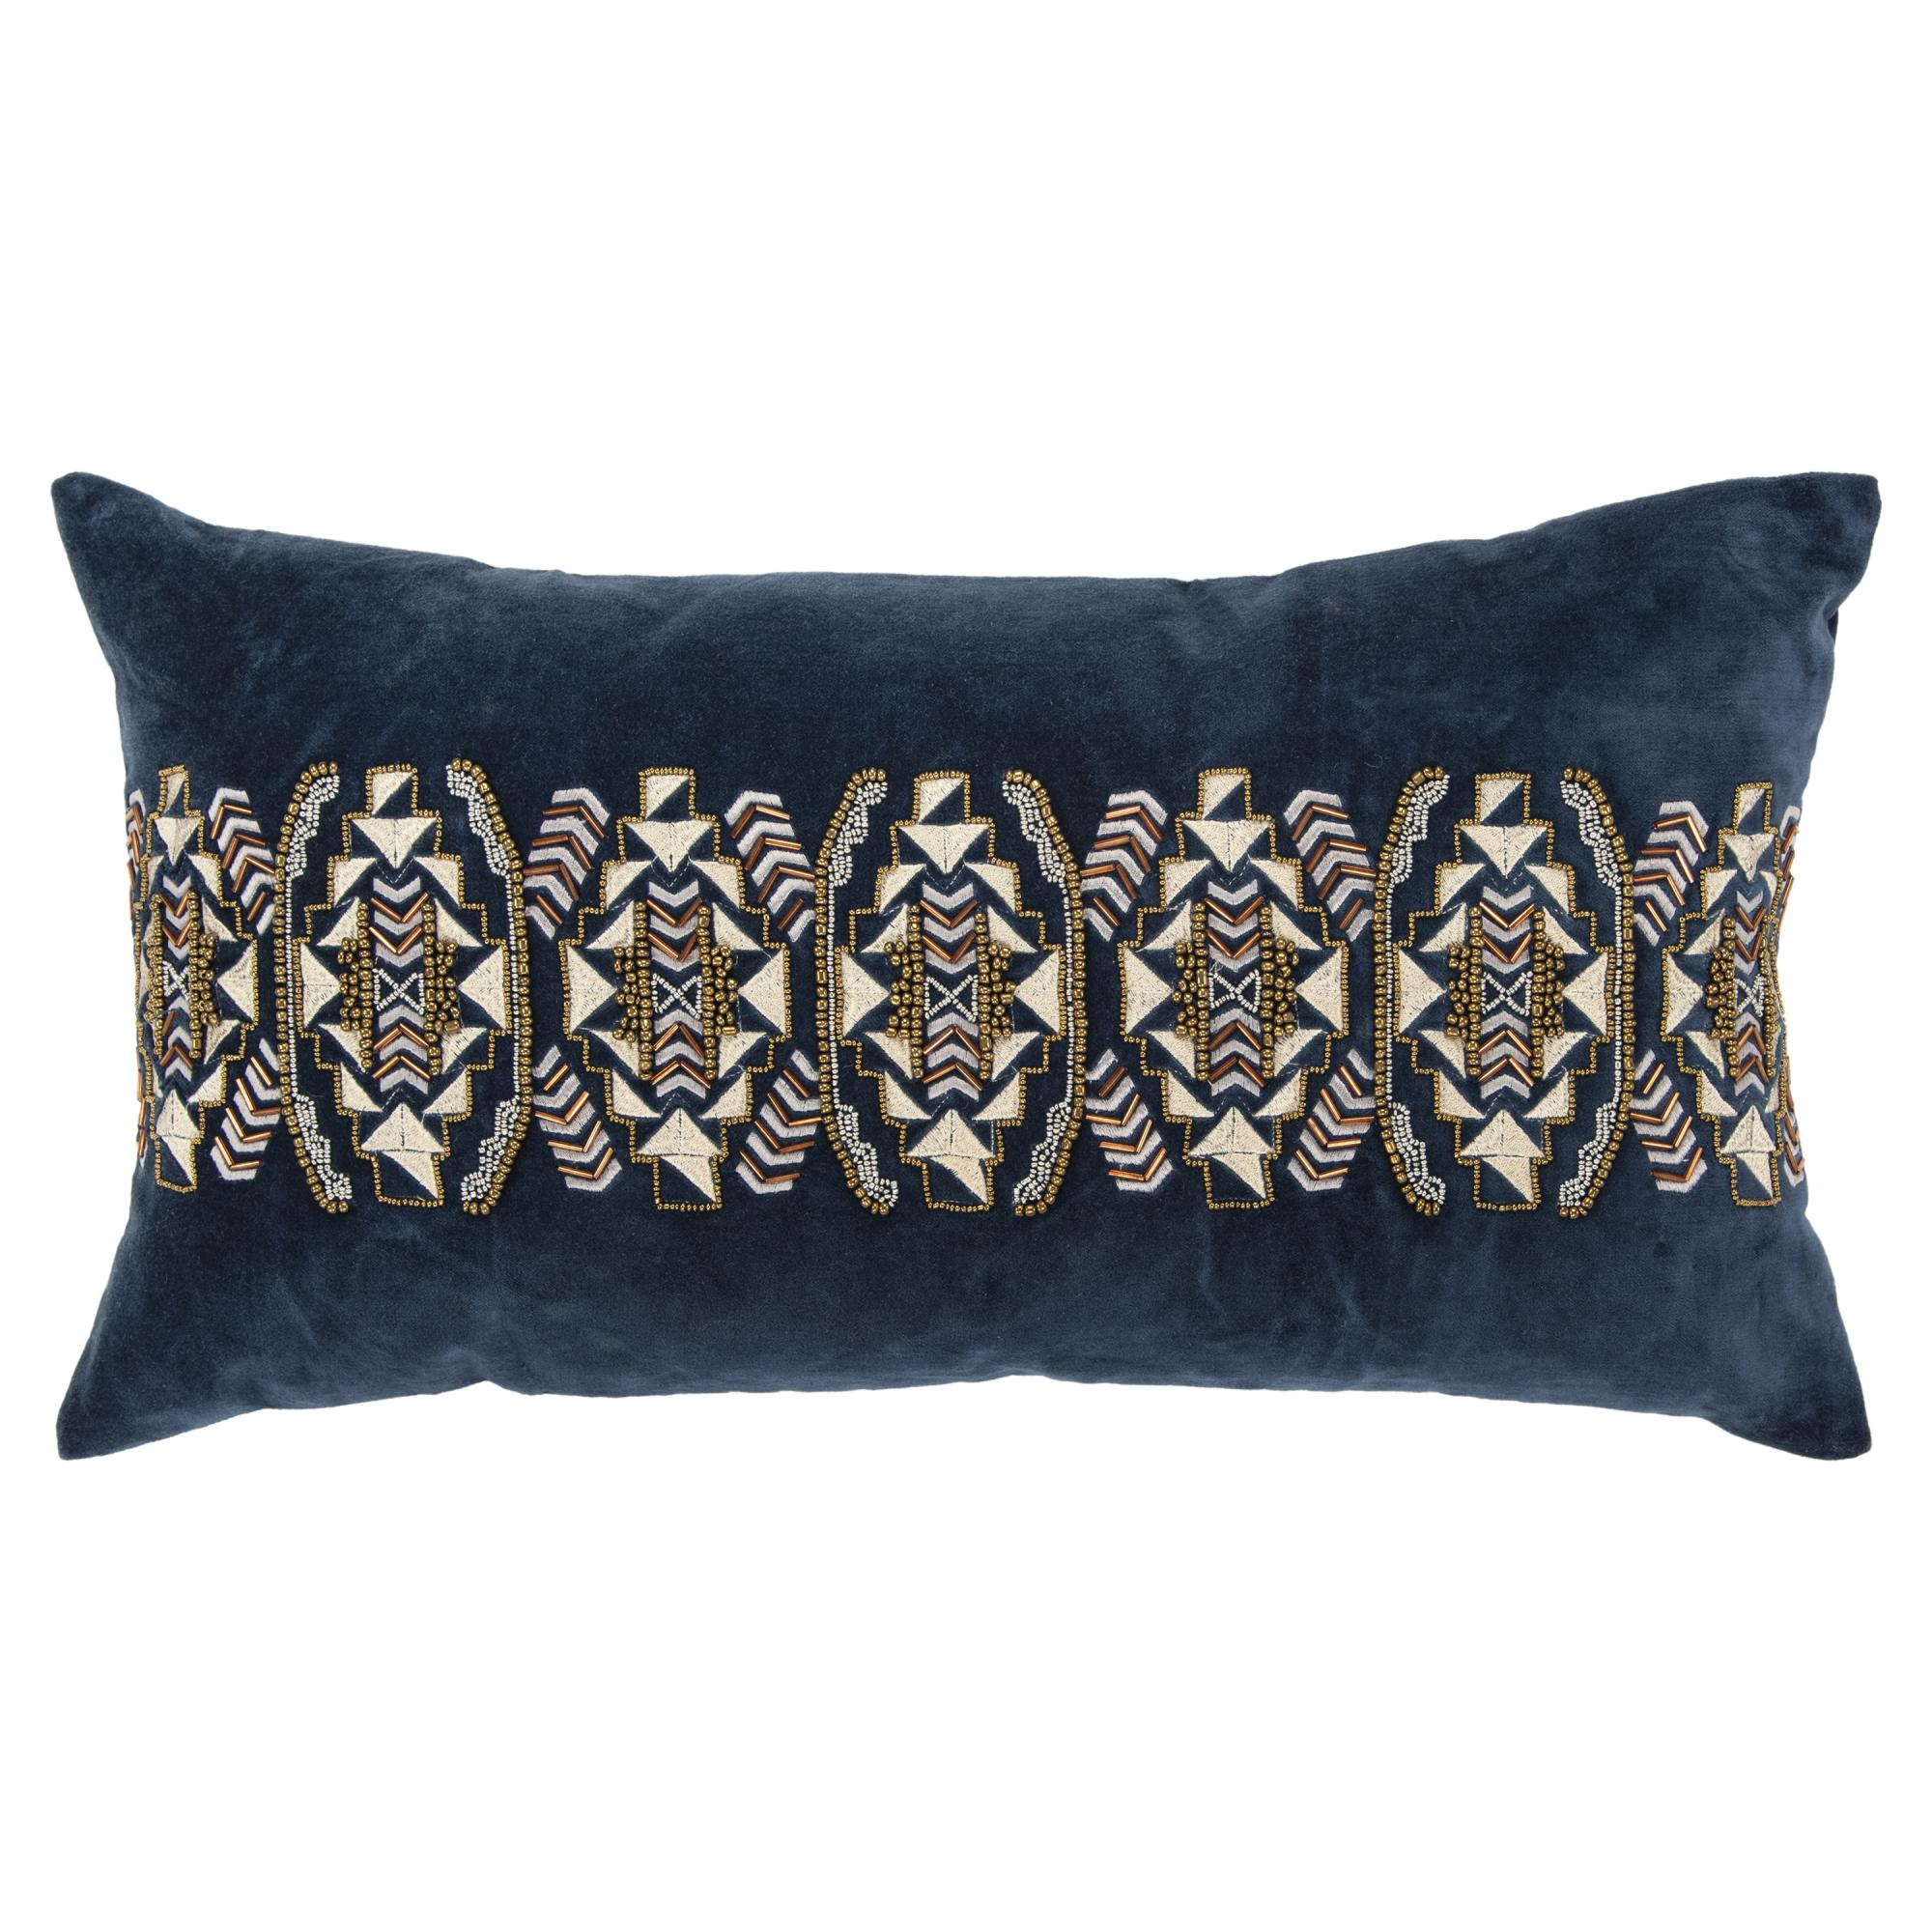 "Rizzy Home Decorative Poly Filled Throw Pillow Geometric 14""X26"" Indigo"